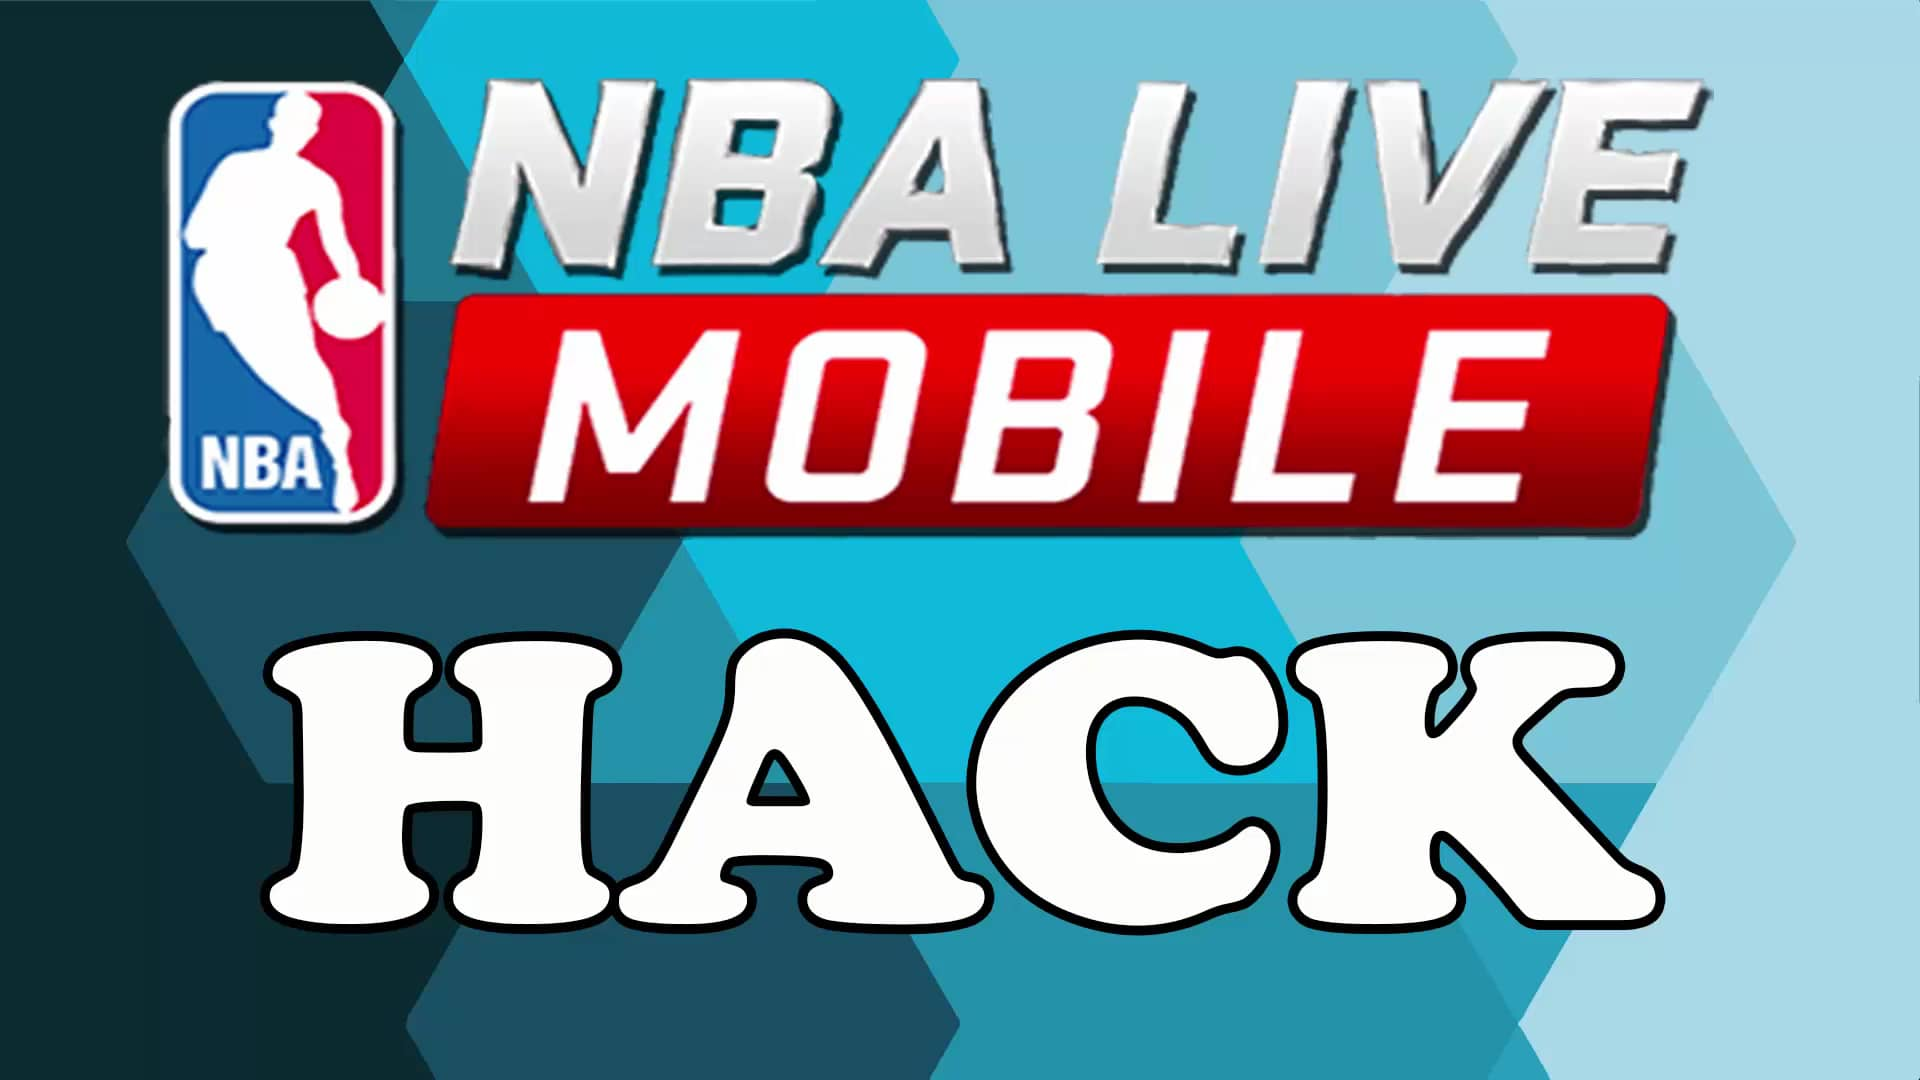 Nexttopgamer.com/nba-live-mobile-hack-for-android-and-ios